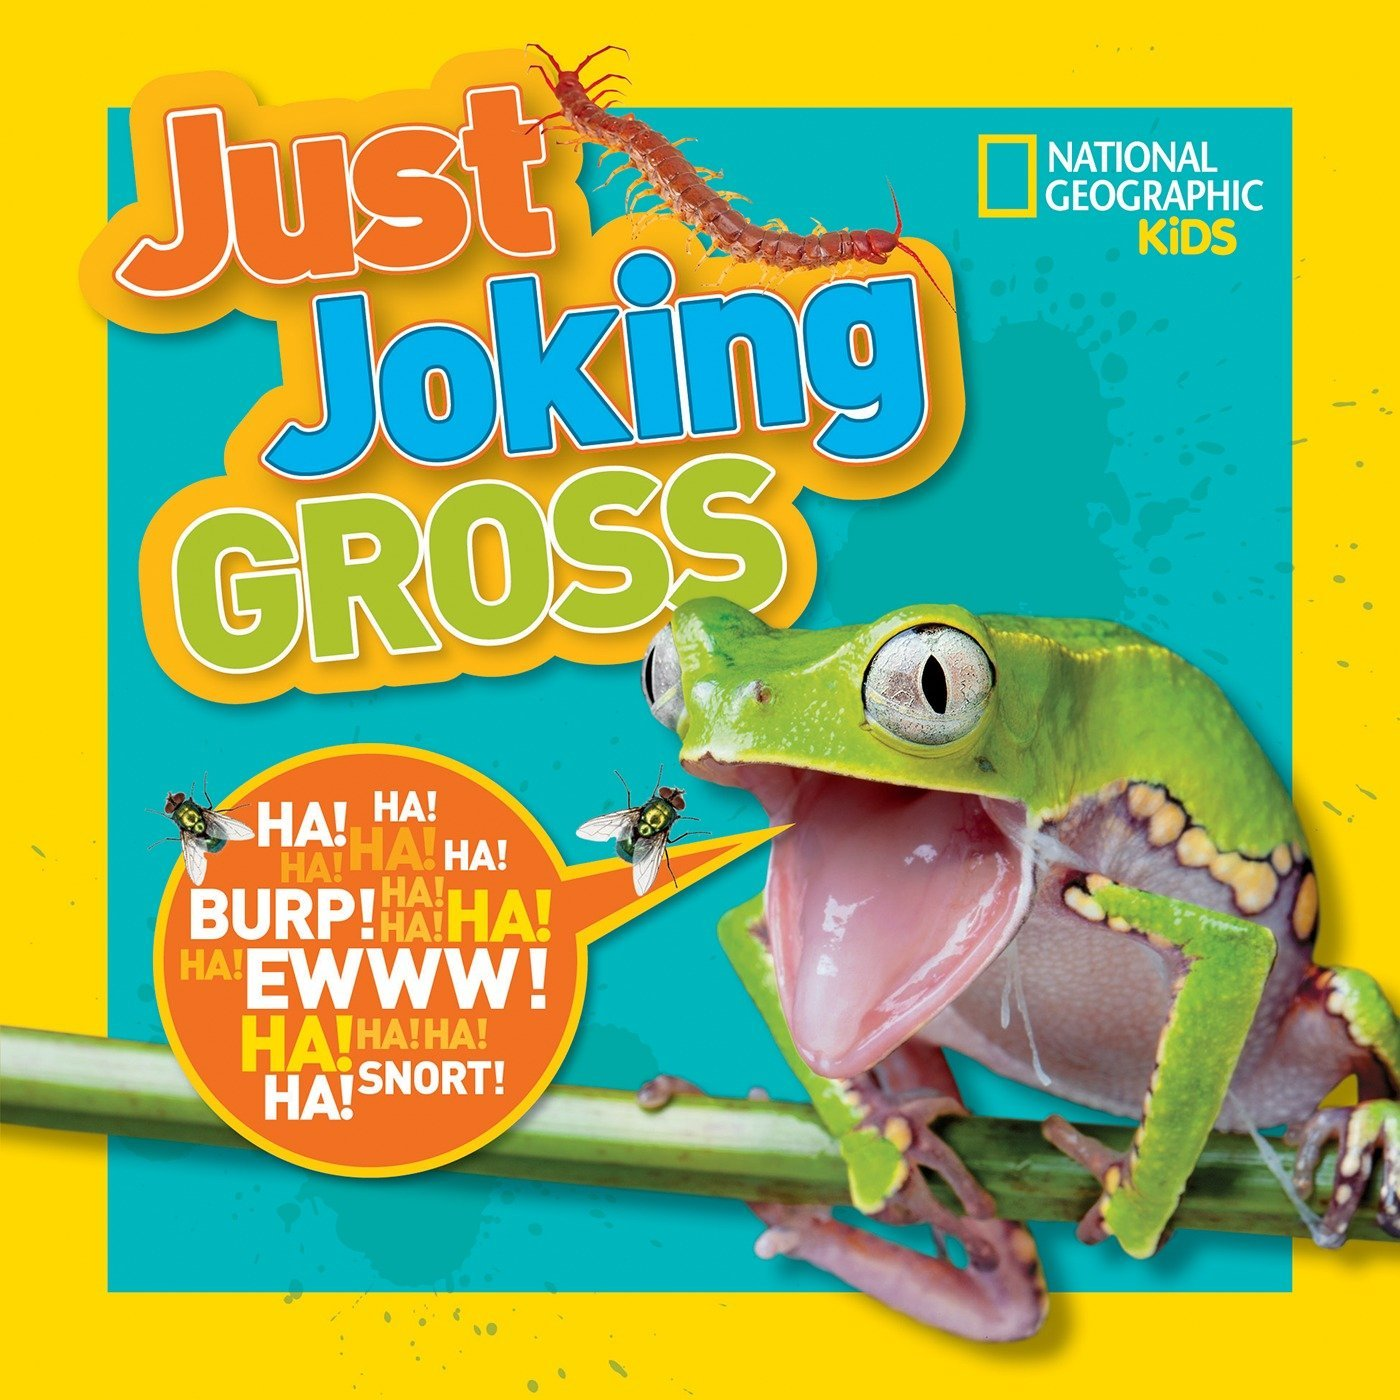 National Geographic Kids Just Joking Gross: National Geographic Kids:  9781426327179: Amazon.com: Books